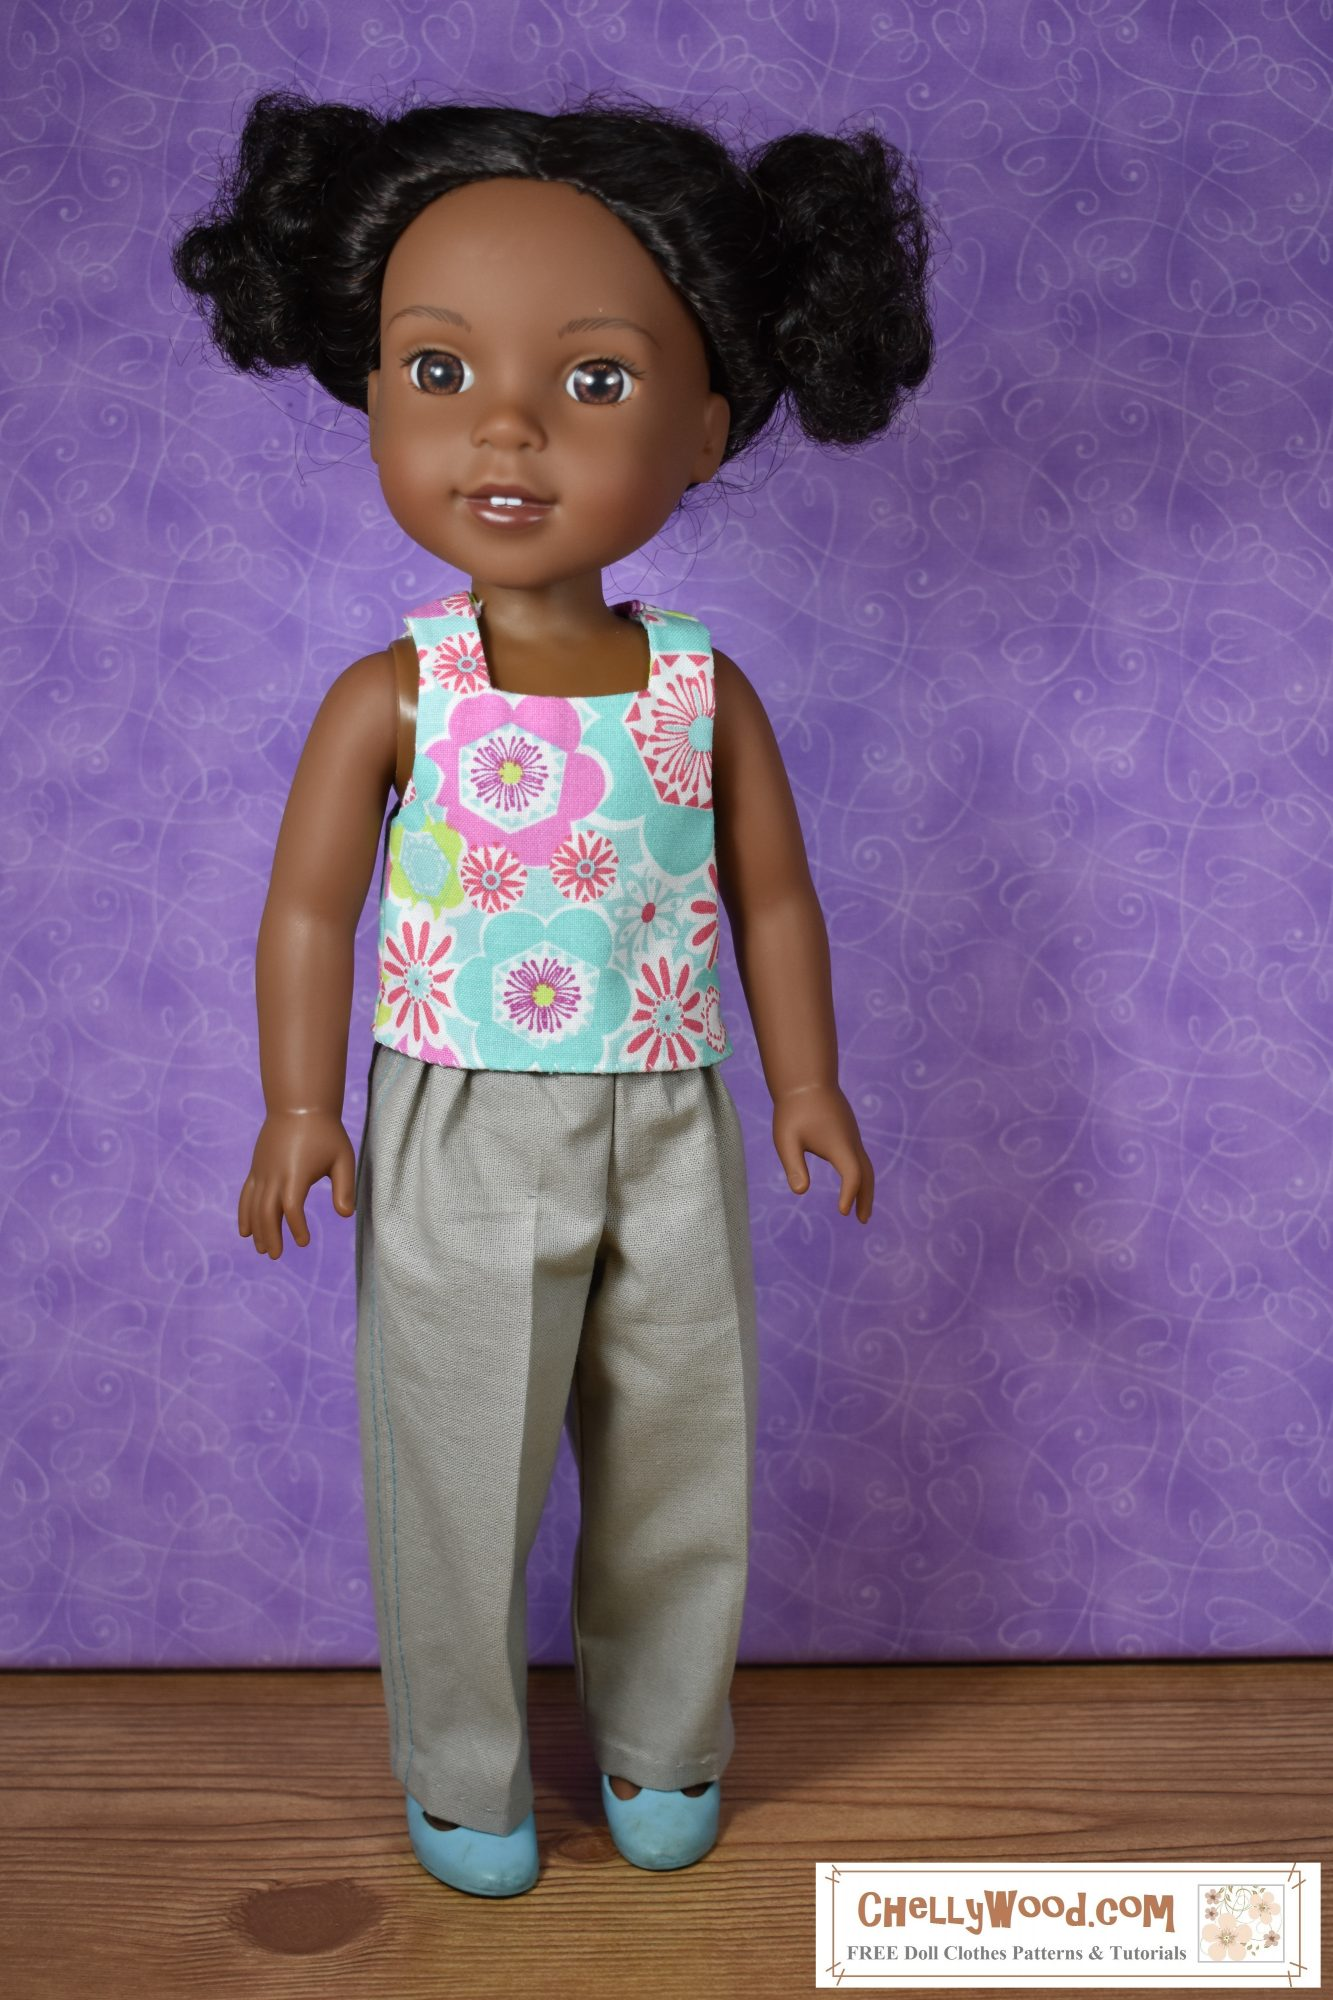 """Please click on the link in the caption to find the free patterns and tutorials for making this outfit. The image shows a Wellie Wisher doll (Kendall from American Girl) wearing a handmade square-neck tank top and khaki pants. Her plastic shoes are MaryJanes. At the bottom of the image, there's a URL for the website where you can print the free pattern for making this entire outfit: ChellyWood.com. The Chelly Wood website's motto is """"free doll clothes patterns and tutorials for dolls of many shapes and sizes."""" Patterns are offered as a PDF download and a MS Word document, for easy printing."""